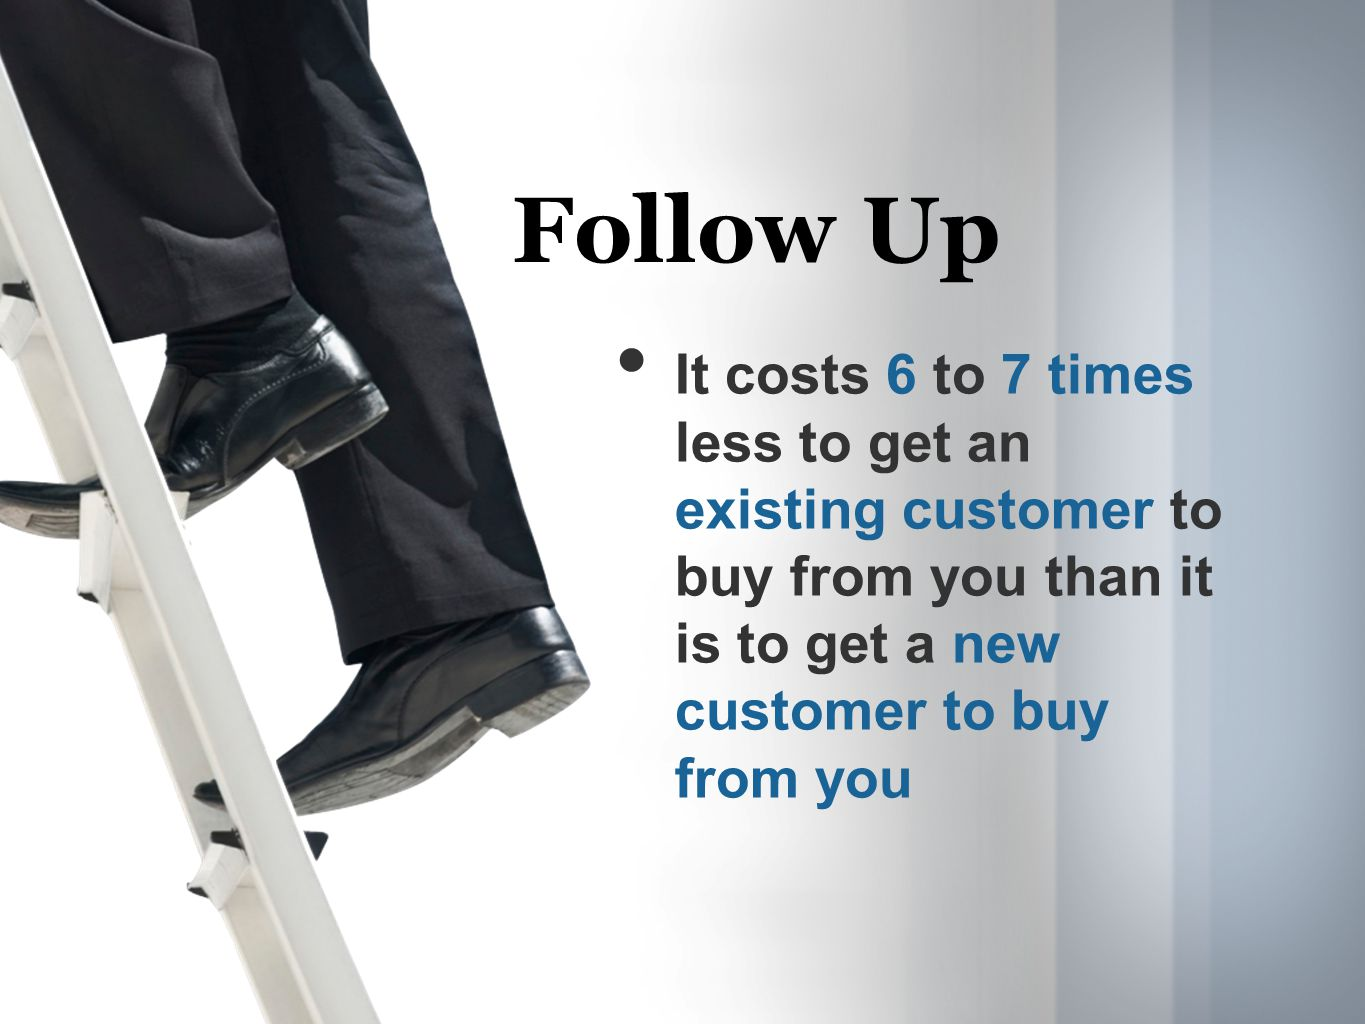 It costs 6 to 7 times less to get an existing customer to buy from you than it is to get a new customer to buy from you Follow Up